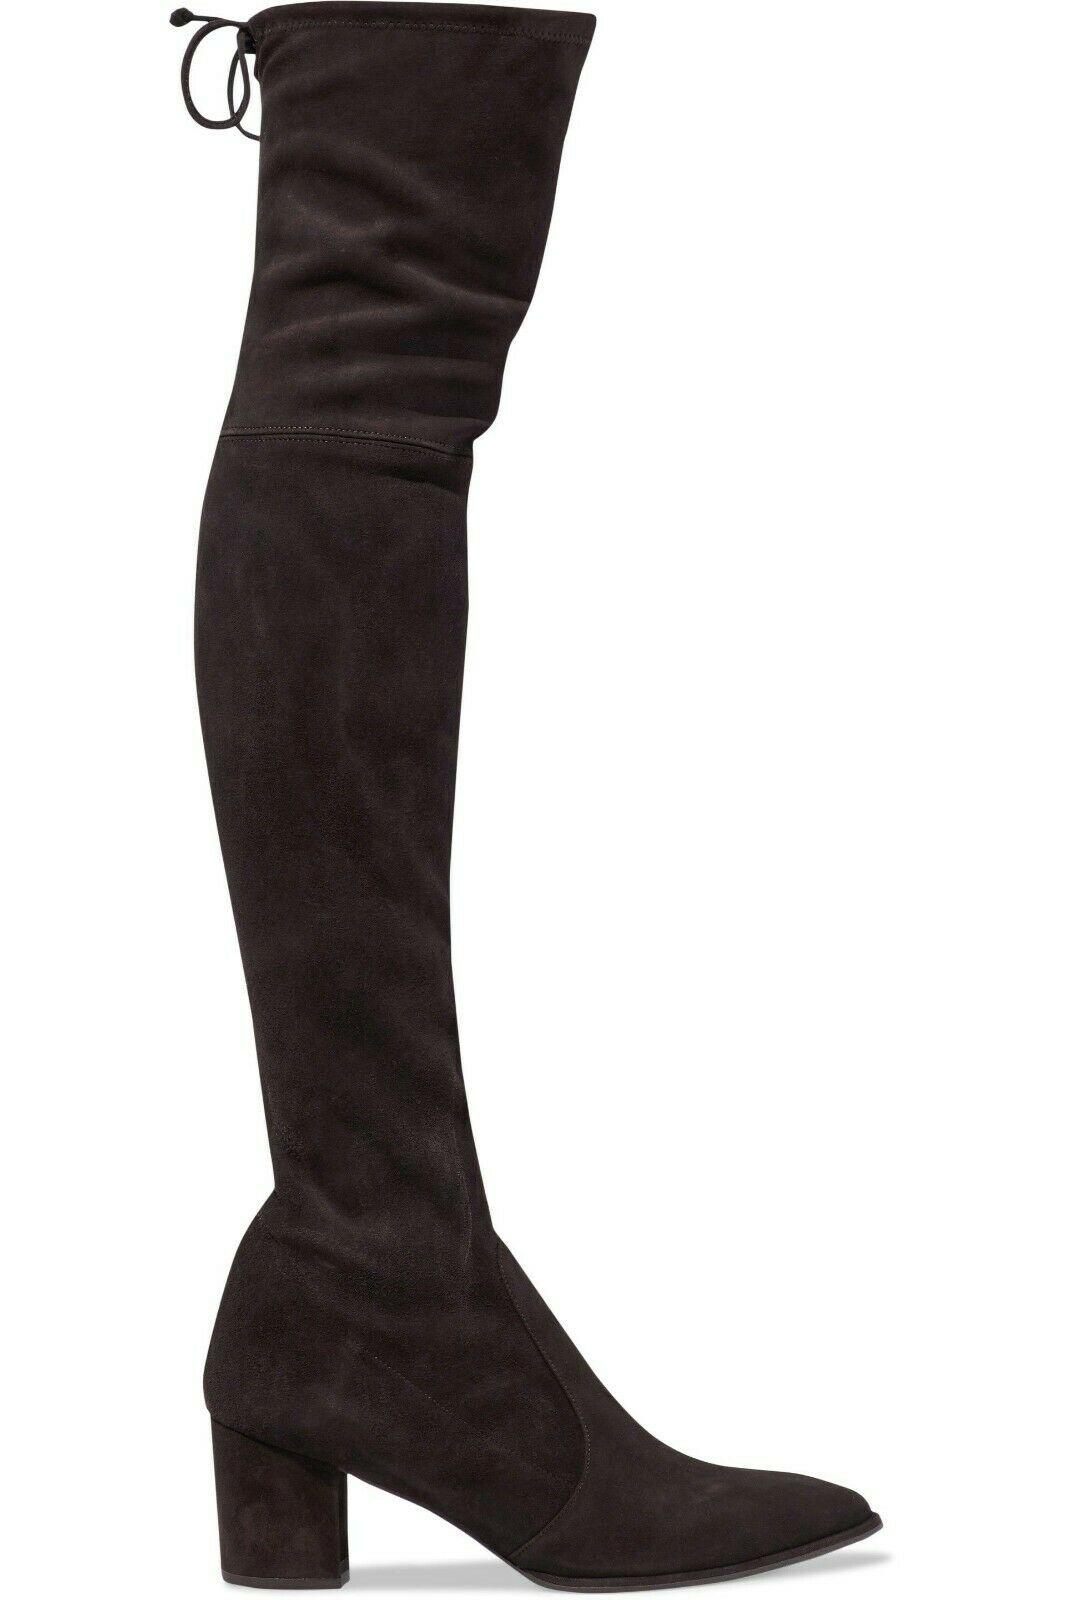 $798 Stuart Weitzman Thighlan Over Knee Boot Suede Boots Thigh High Shoes 8